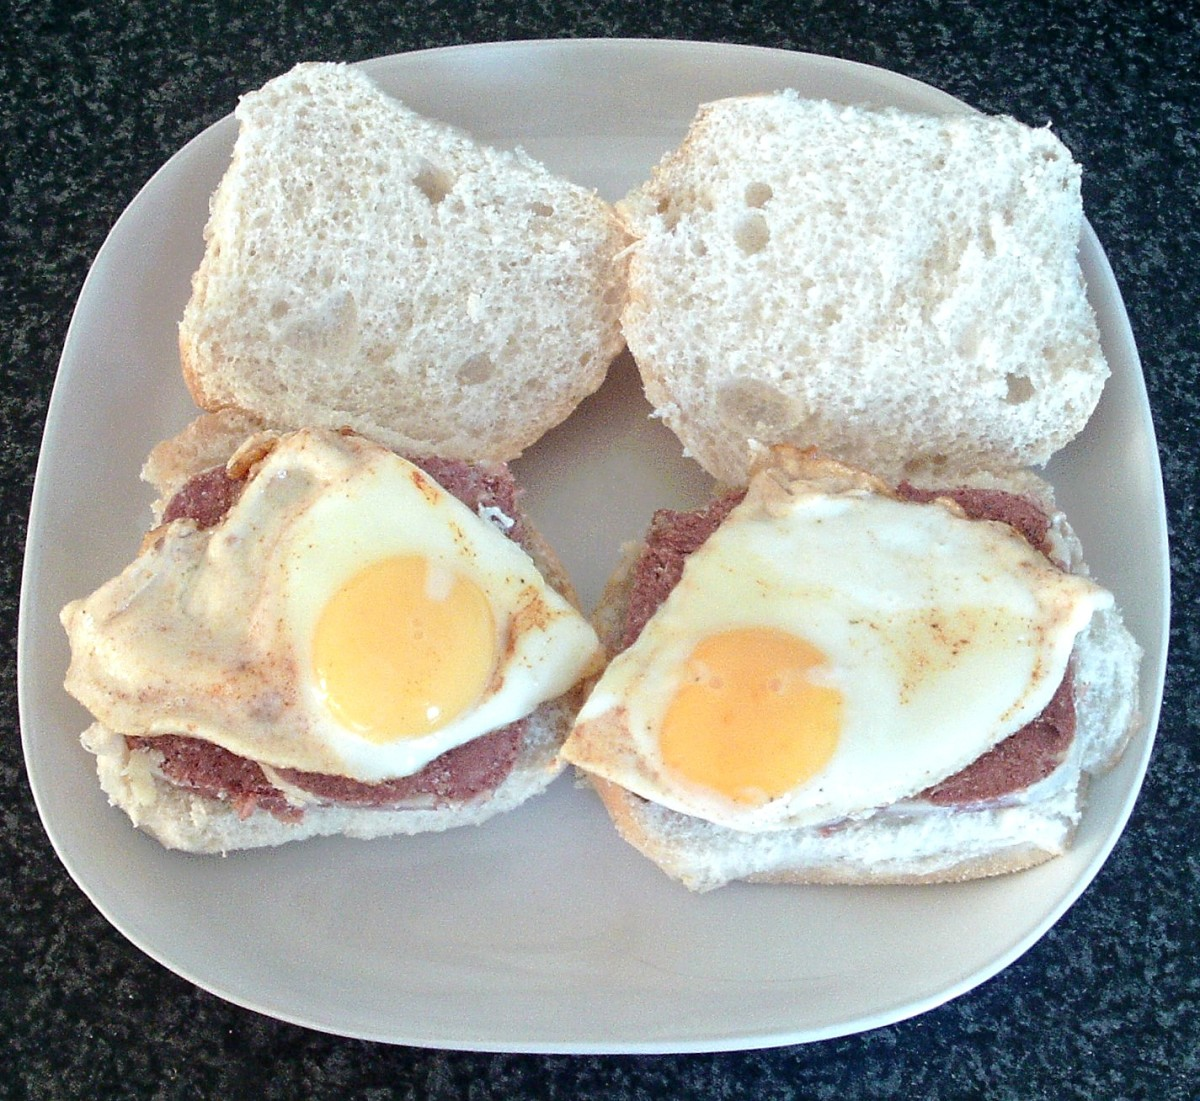 Spiced and sunny side up bread rolls are laid on top of corned beef